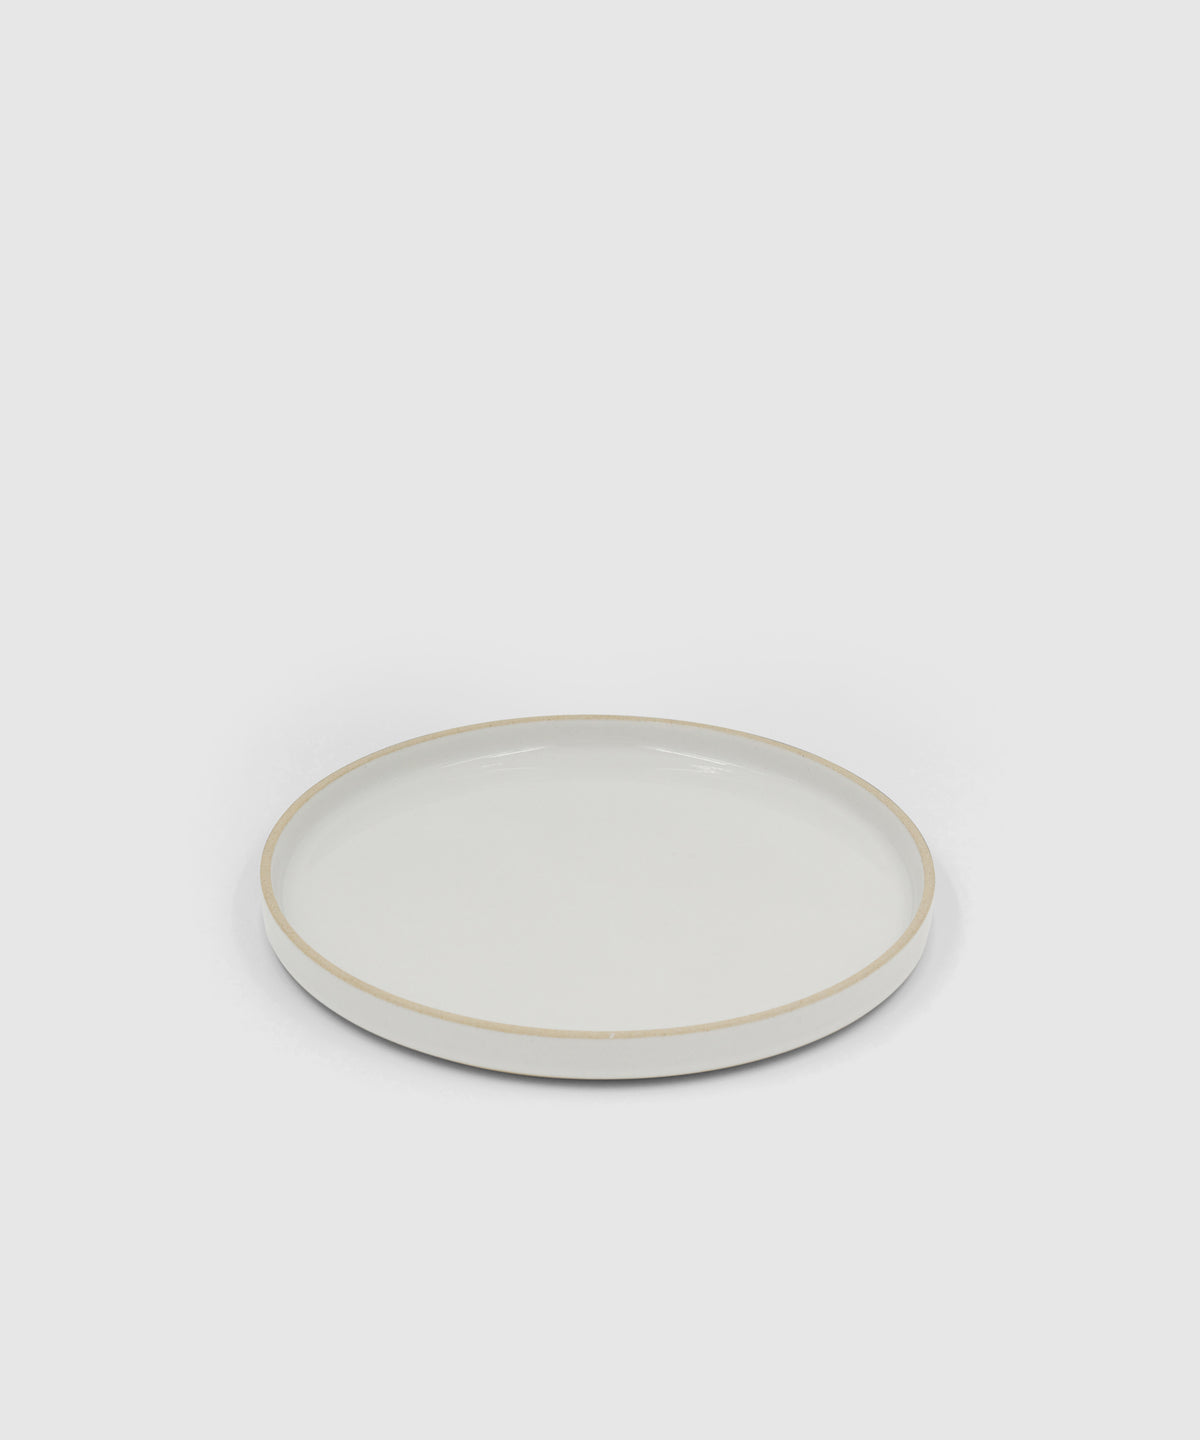 Hasami Zen Porcelain Dinner Plate – Gloss Grey